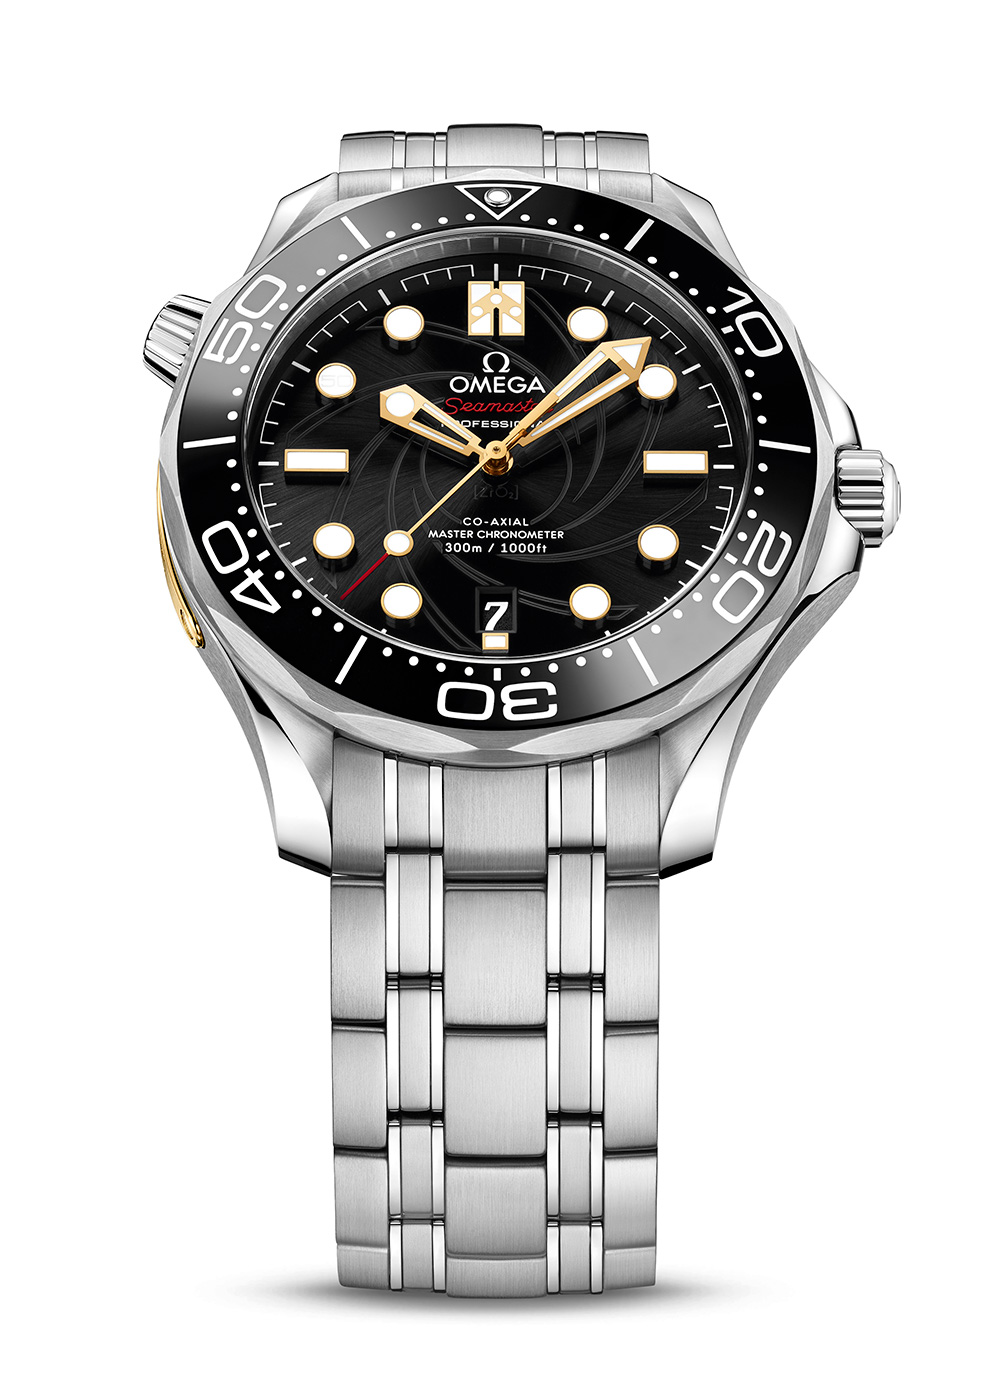 Omega Seamaster 300M 50 años James Bond